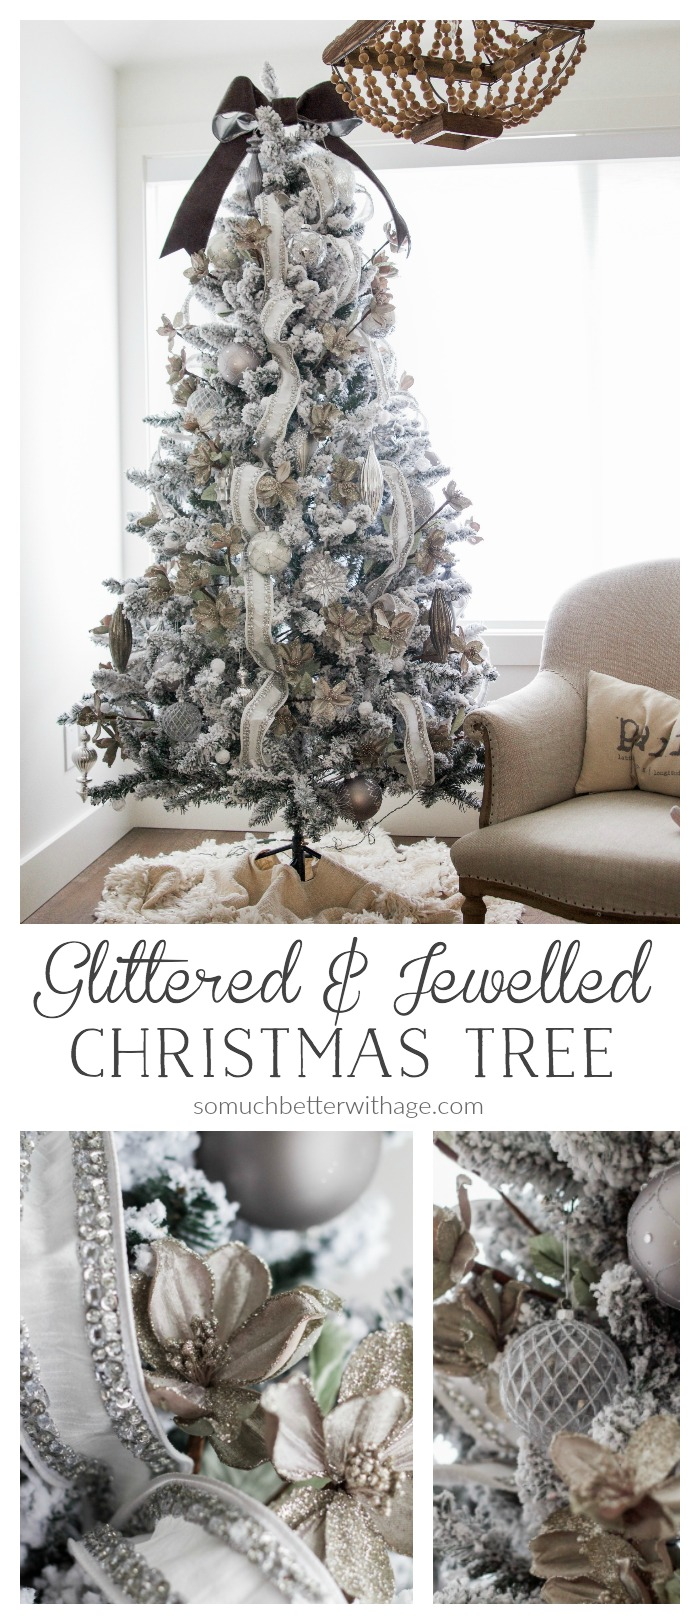 Glittered Jewelled Christmas Tree